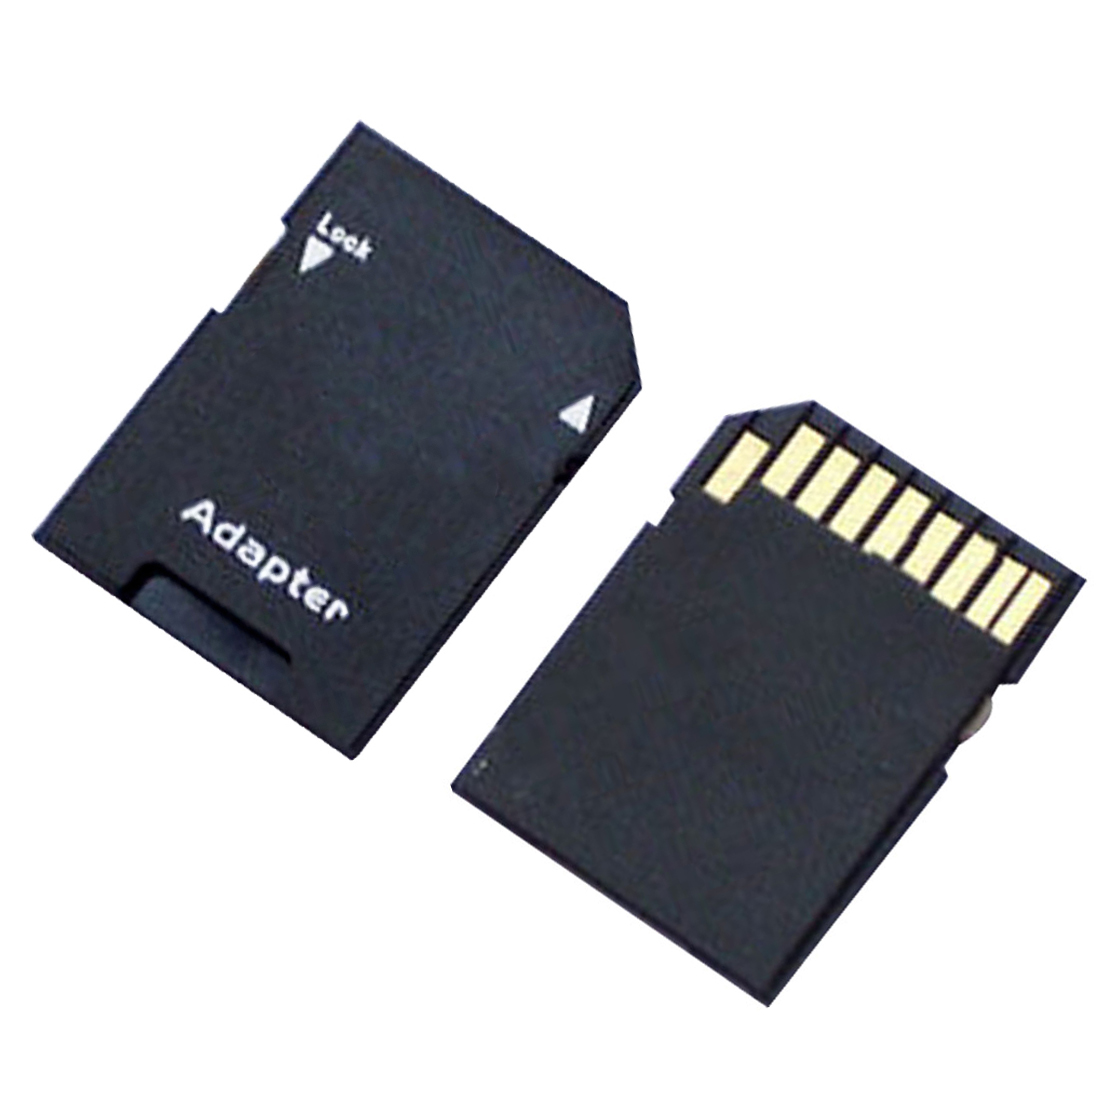 NOYOKERE Hot Sale 2PCS Micro SD TransFlash TF To SD SDHC Memory Card Adapter Convert Into SD Card